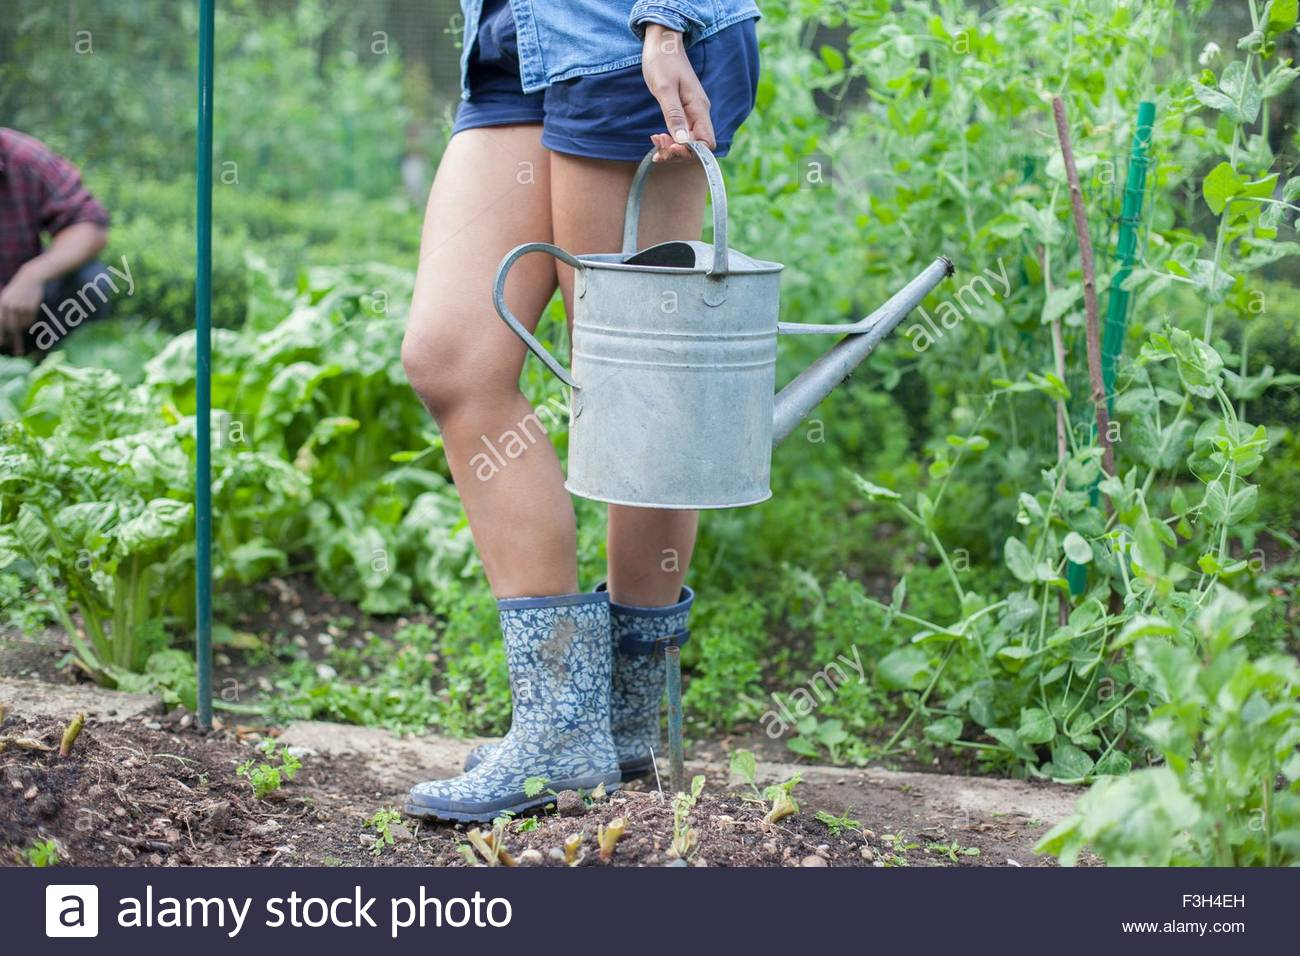 Woman working on allotment - Stock Image